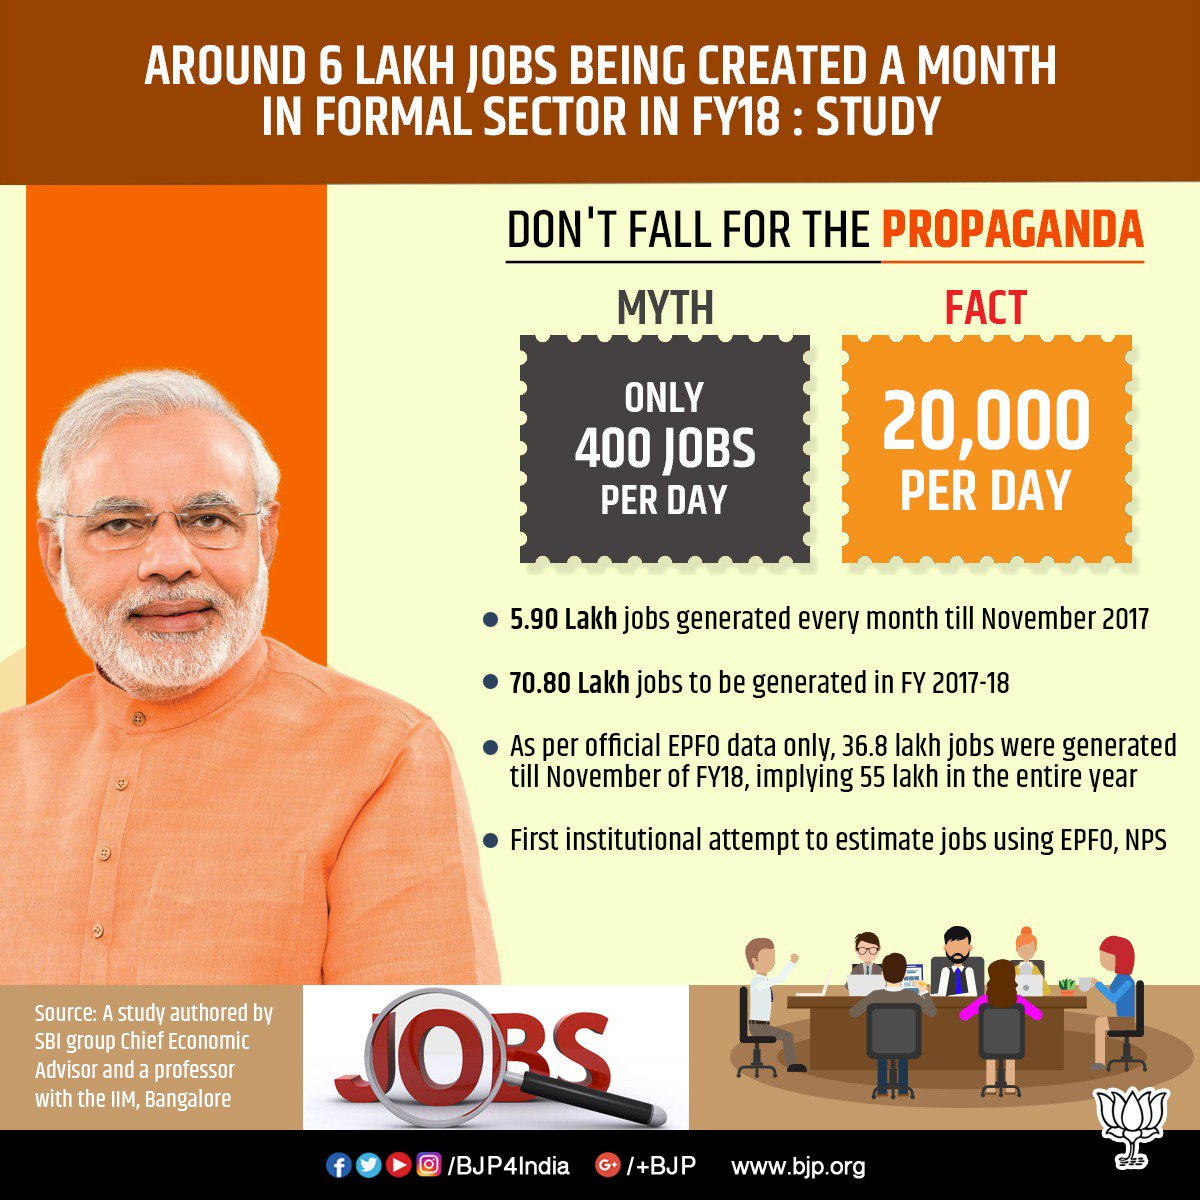 national-news-70-lakhs-jobs-created-in-official-ar